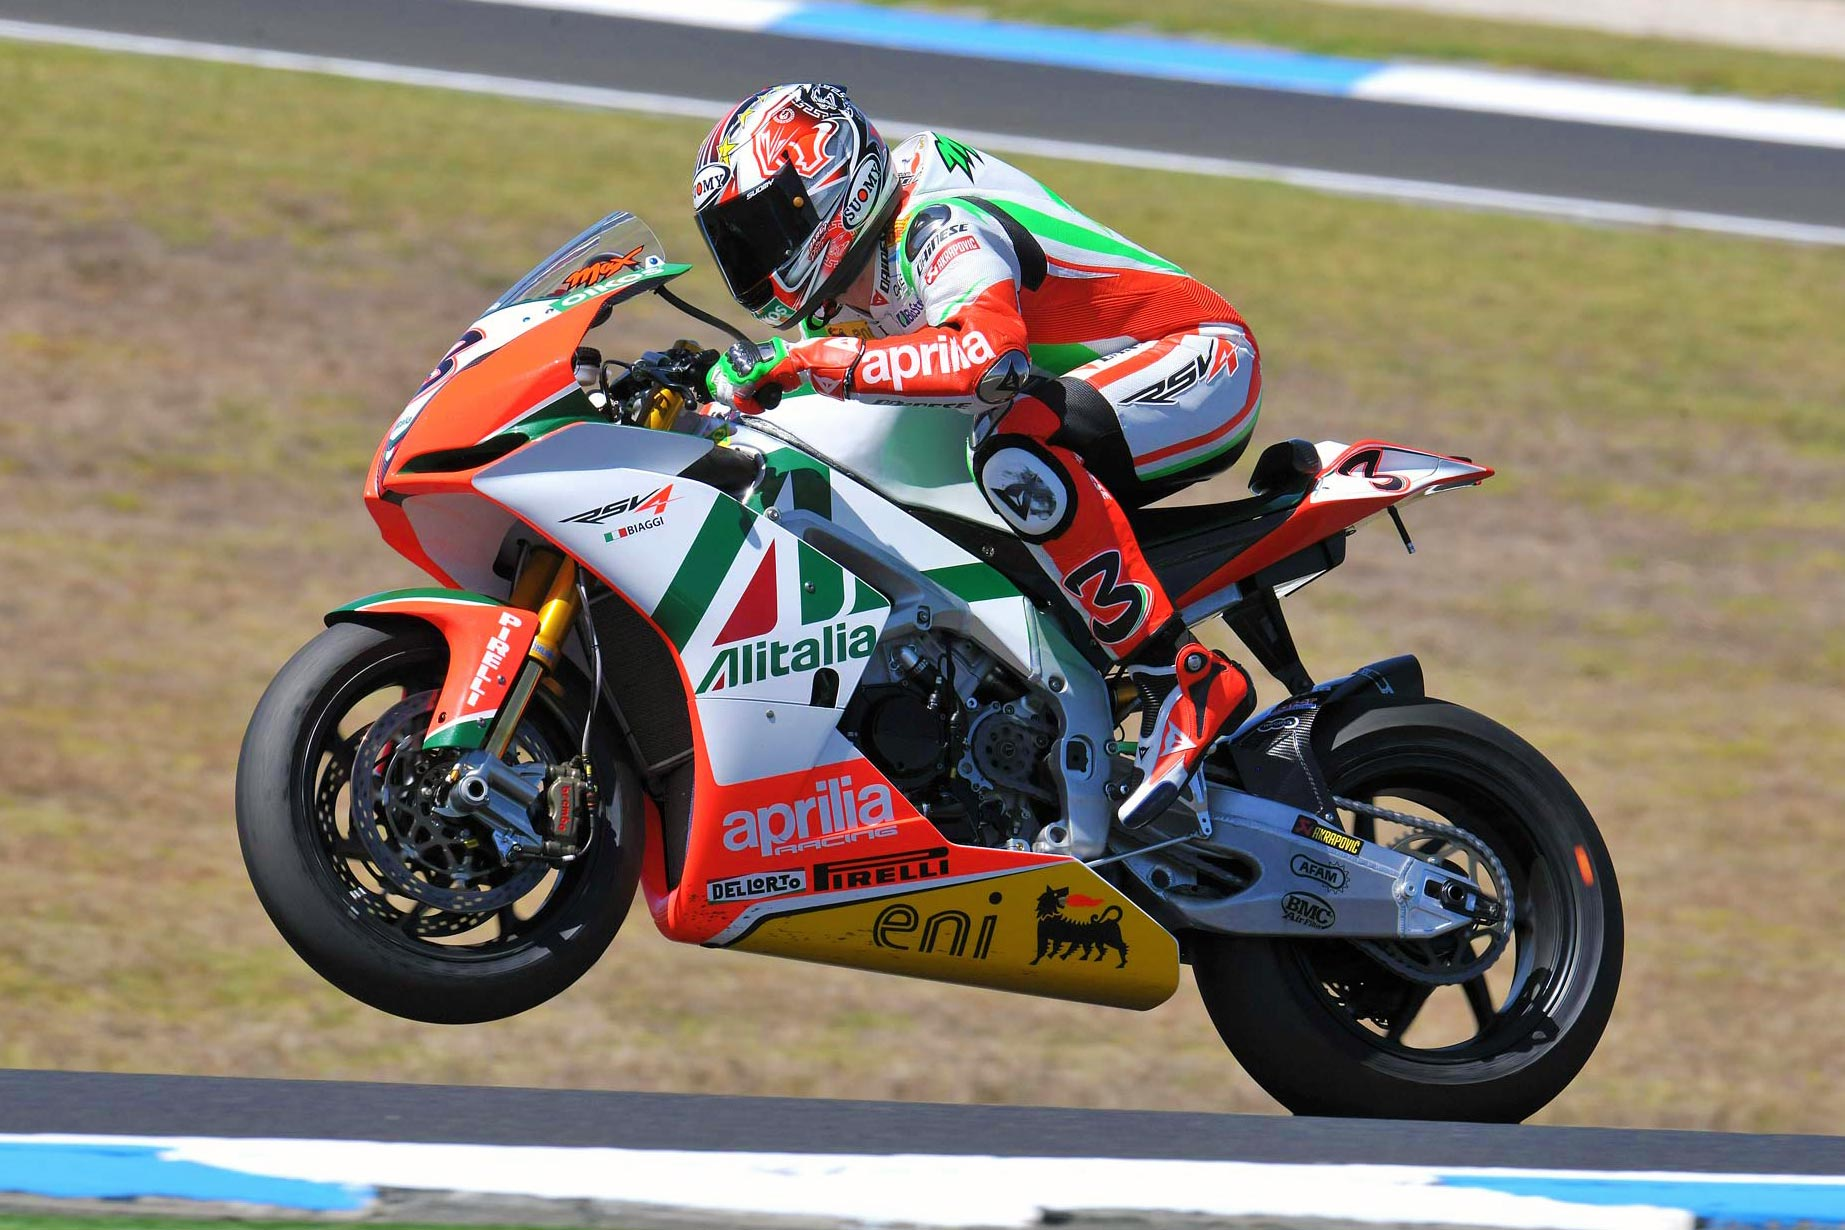 Max biaggi declared stable after supermoto crash asphalt rubber good news concerning two time world superbike champion max biaggi as the italian rider has been declared stable after his supermoto training crash last altavistaventures Gallery